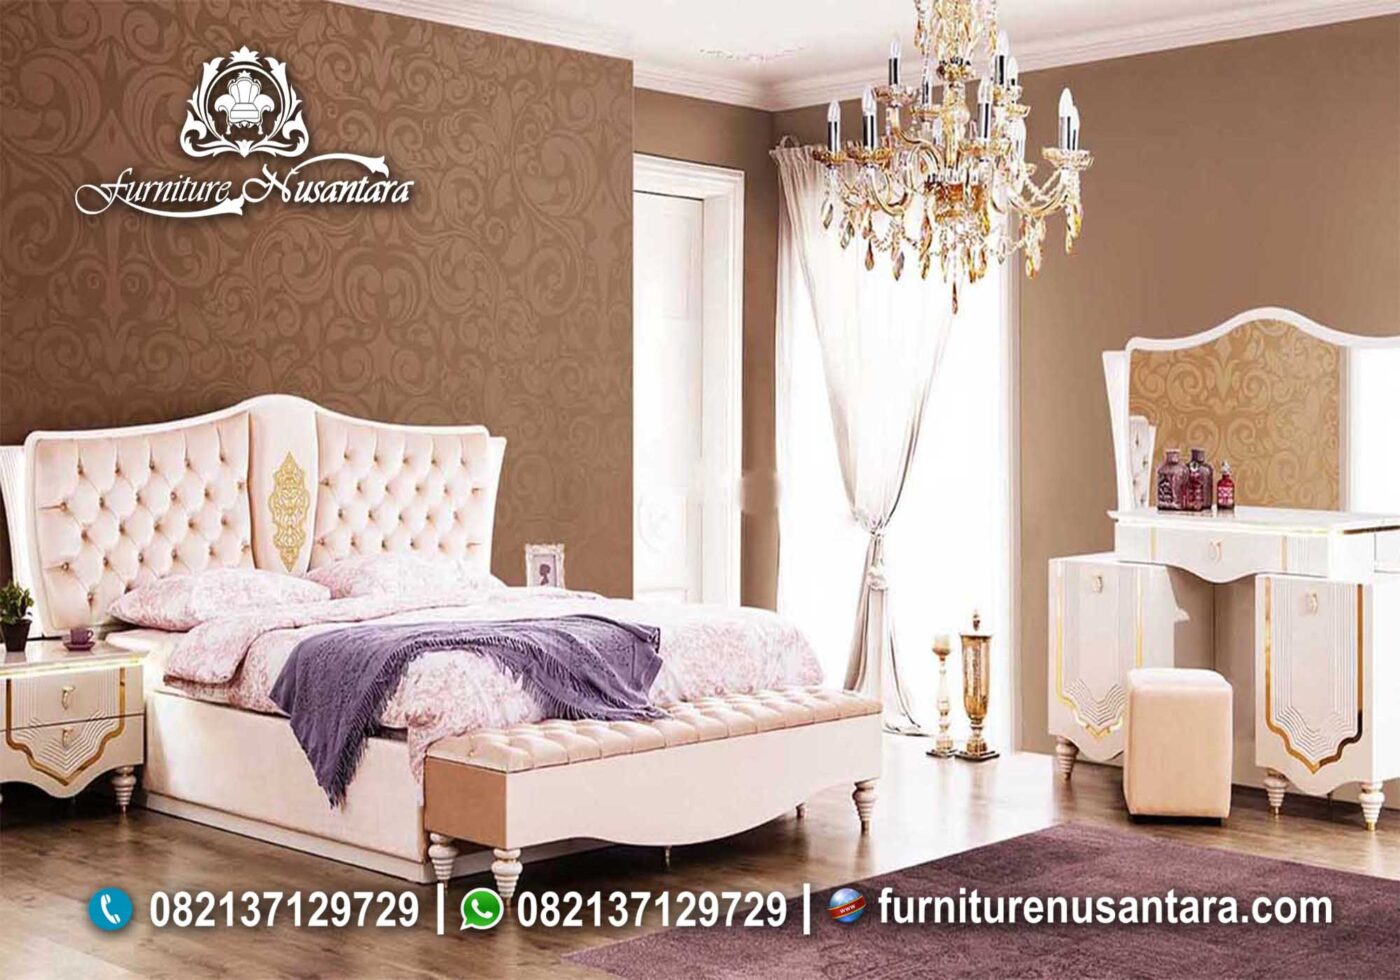 Jual Furniture Kamar Set Semarang KS-66, Furniture Nusantara